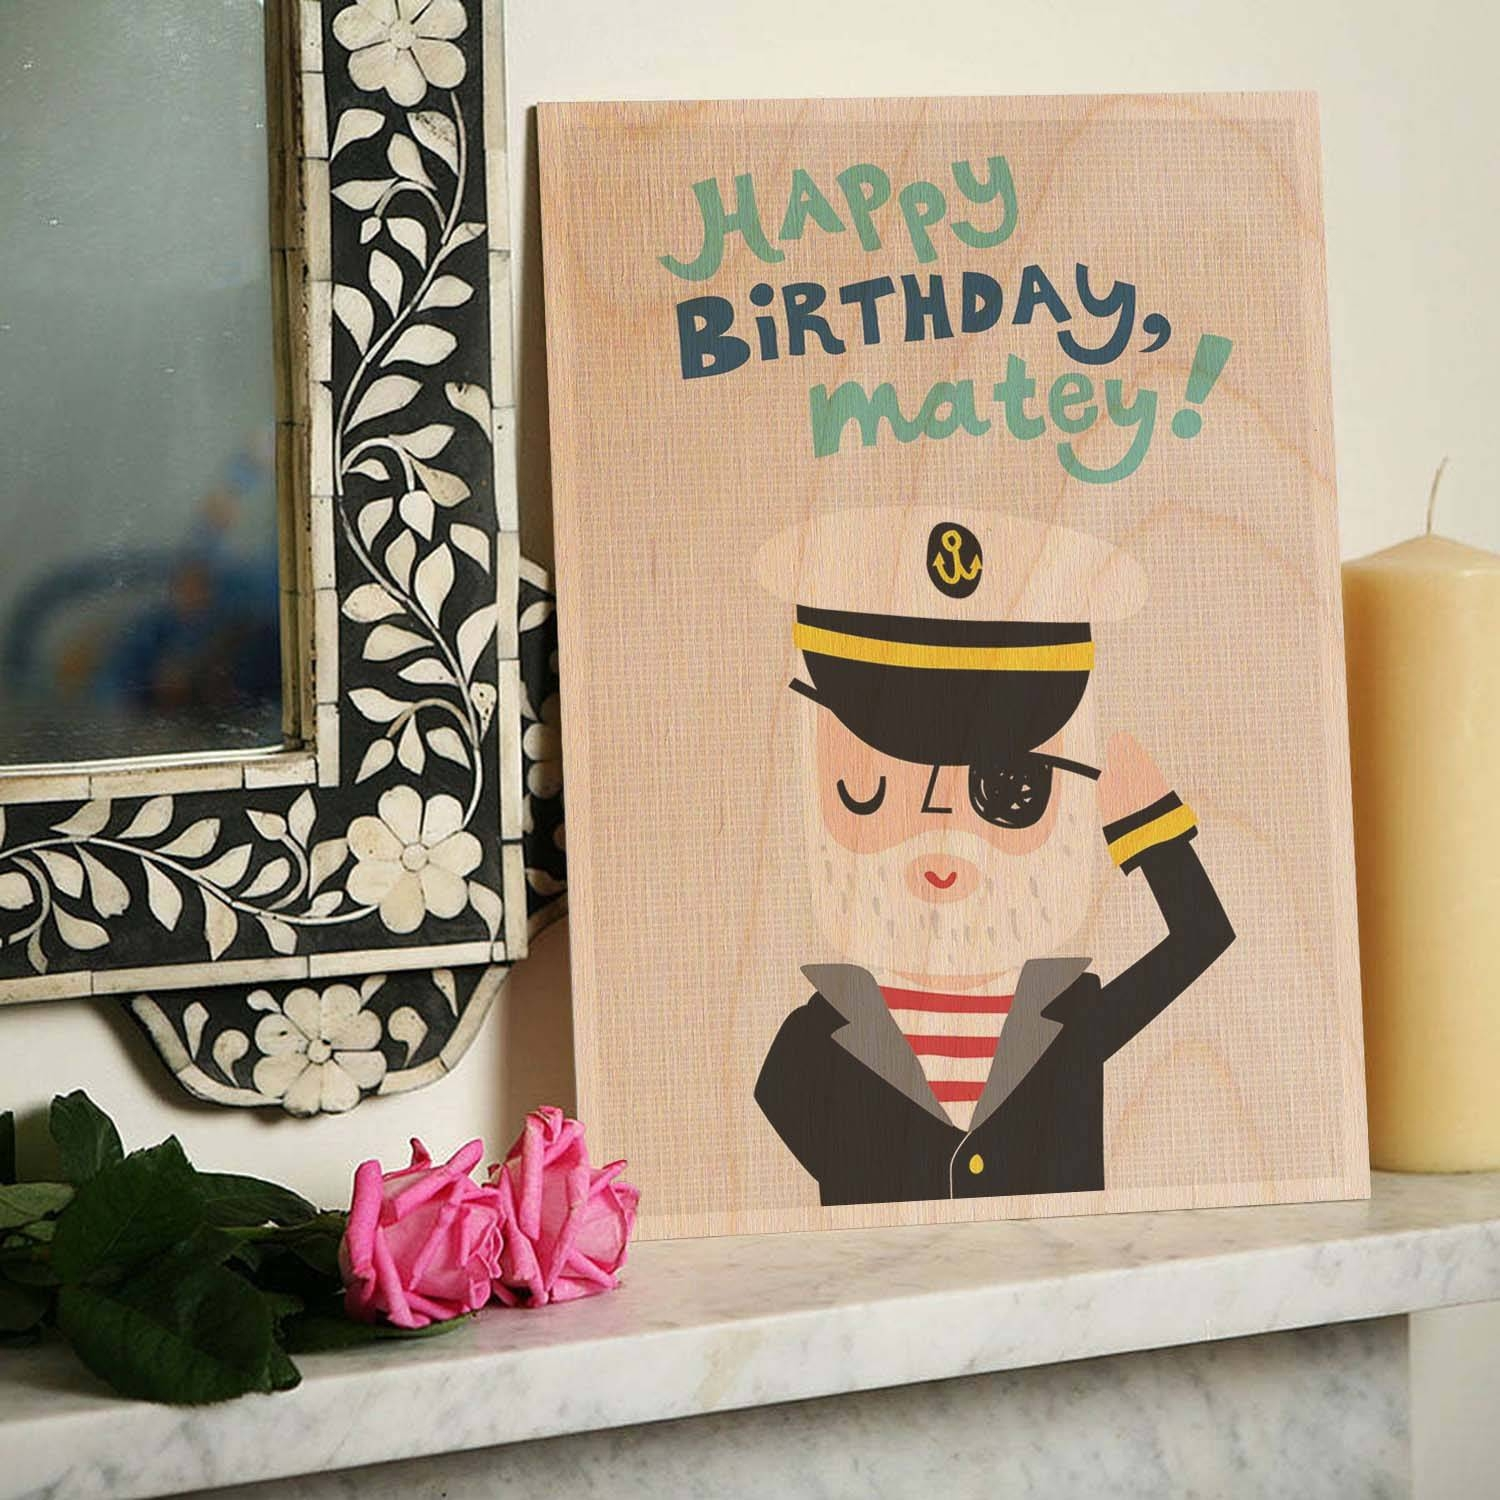 Happy Birthday Matey Wooden Timbergram Wall Art – Wooden Postcards Throughout Most Recent Happy Birthday Wall Art (View 13 of 20)